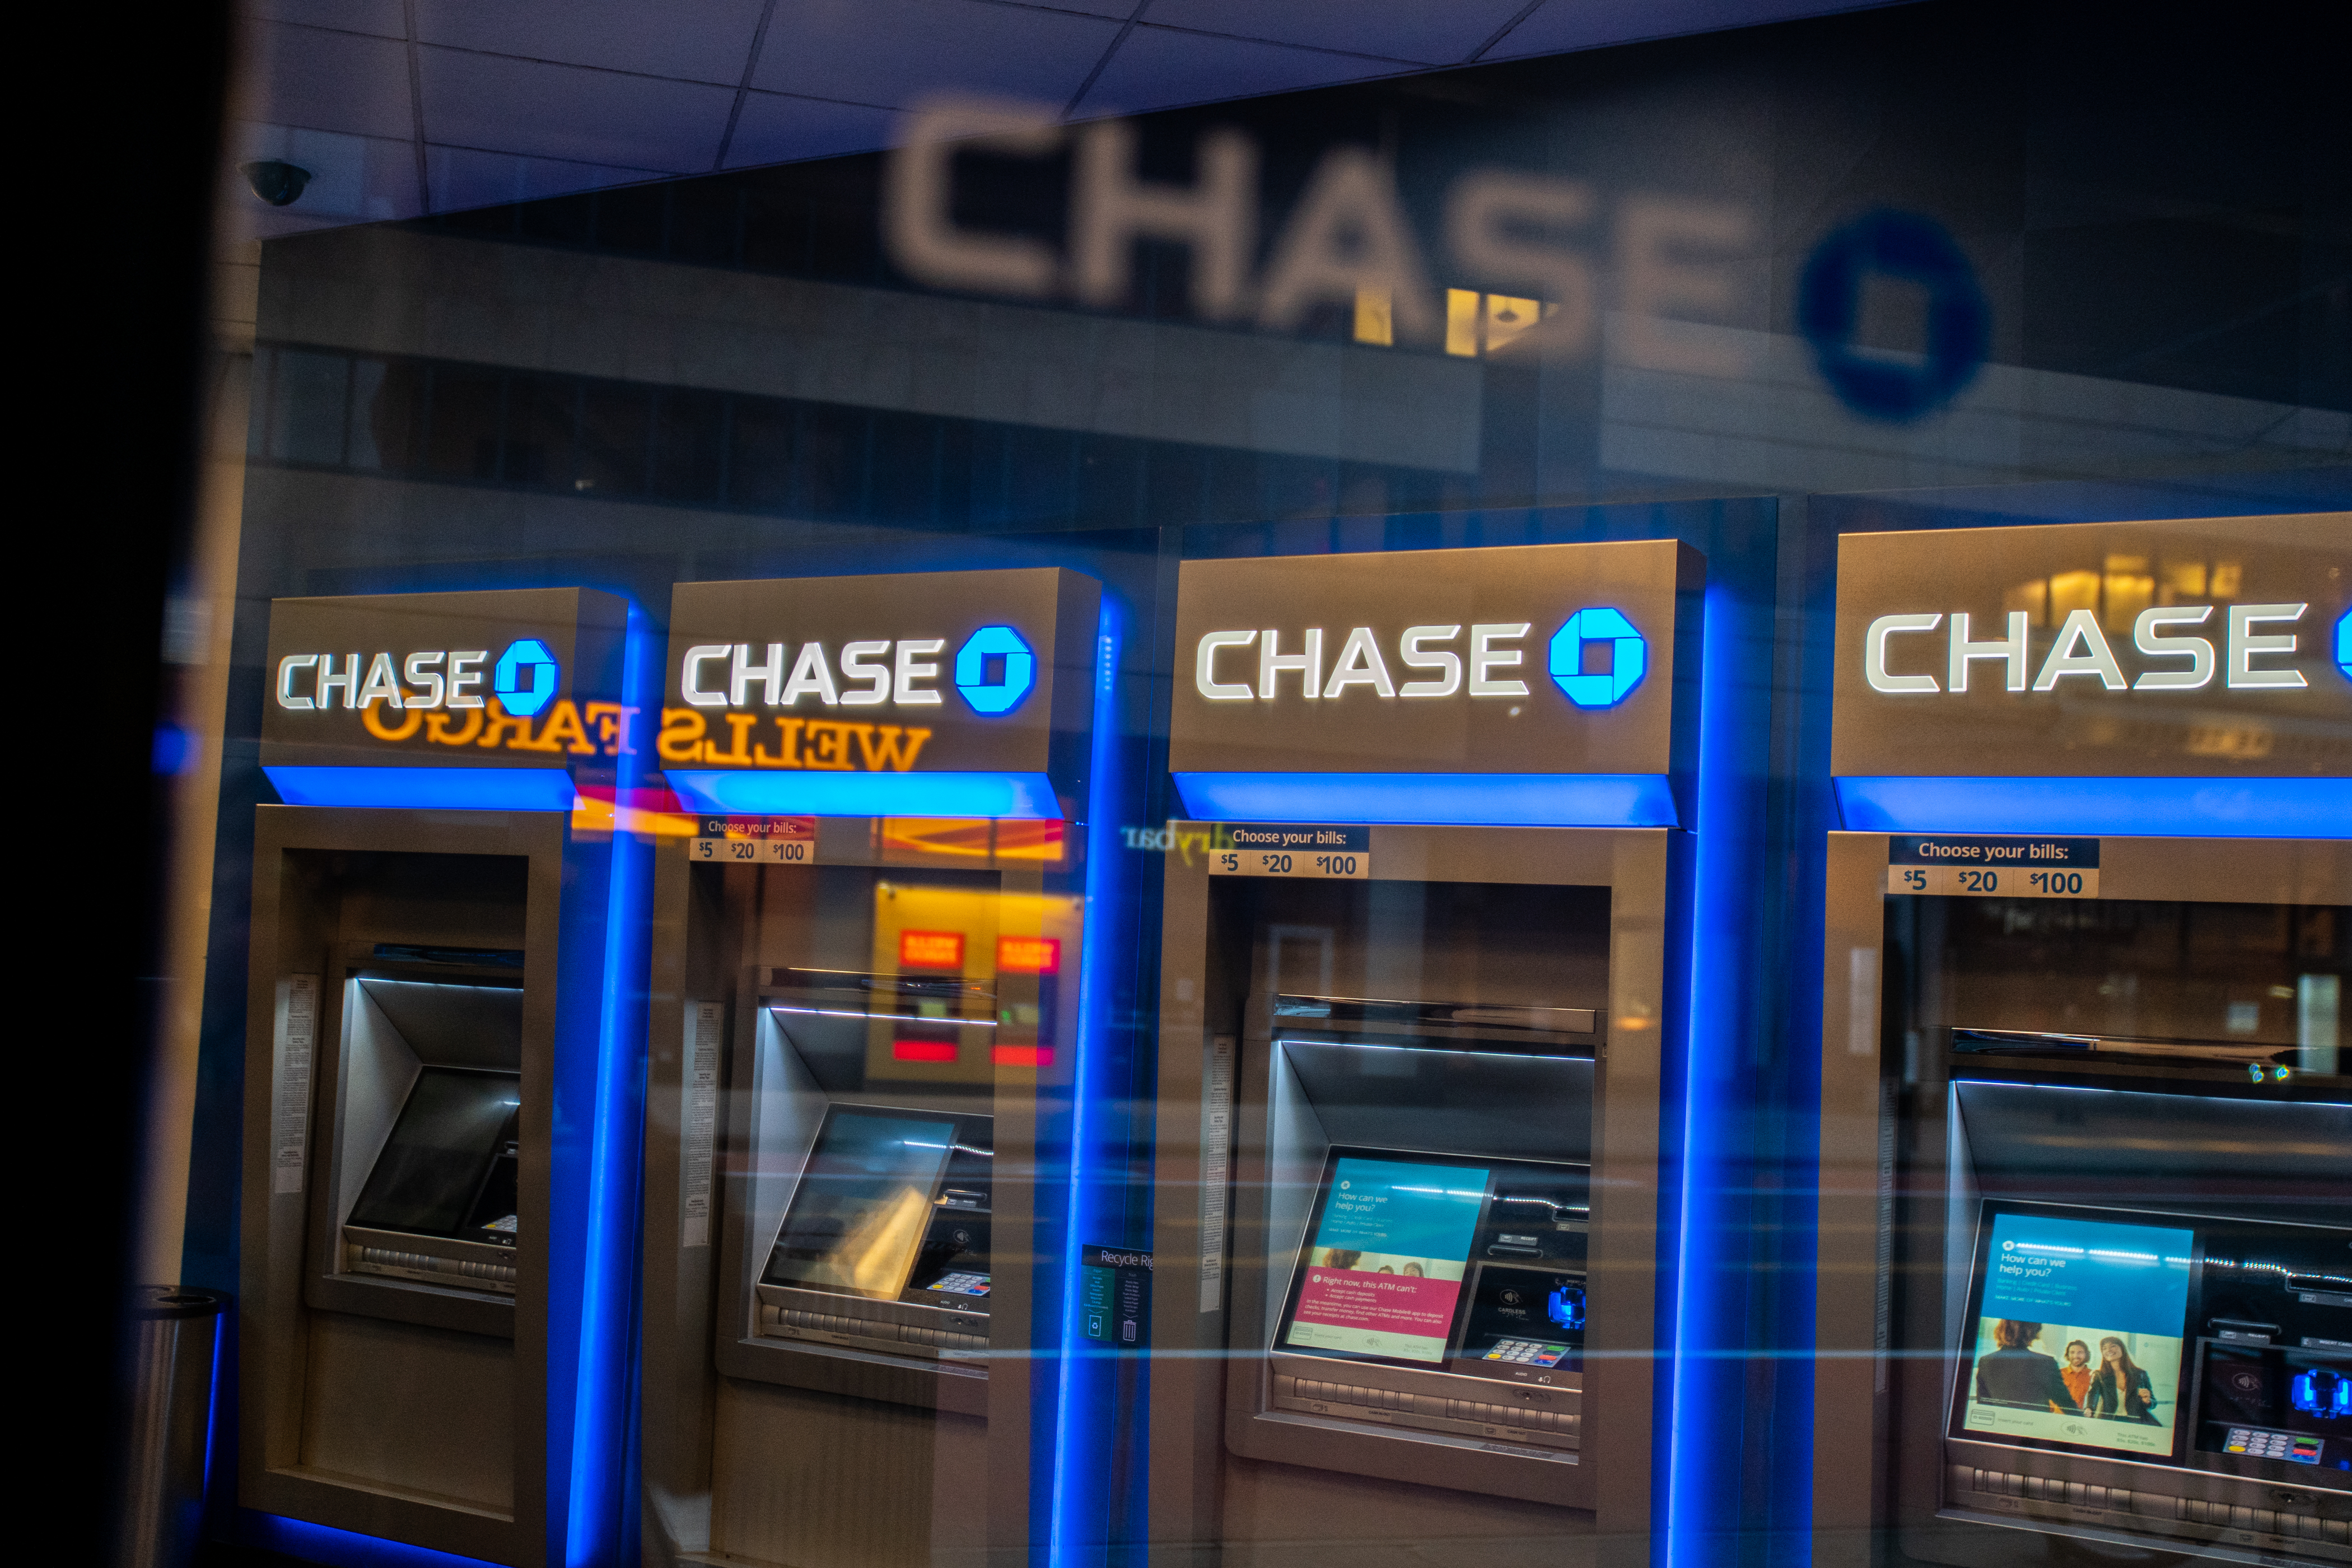 Chase ATM machines are seen in New York City, U.S., March 17, 2020. REUTERS/Jeenah Moon